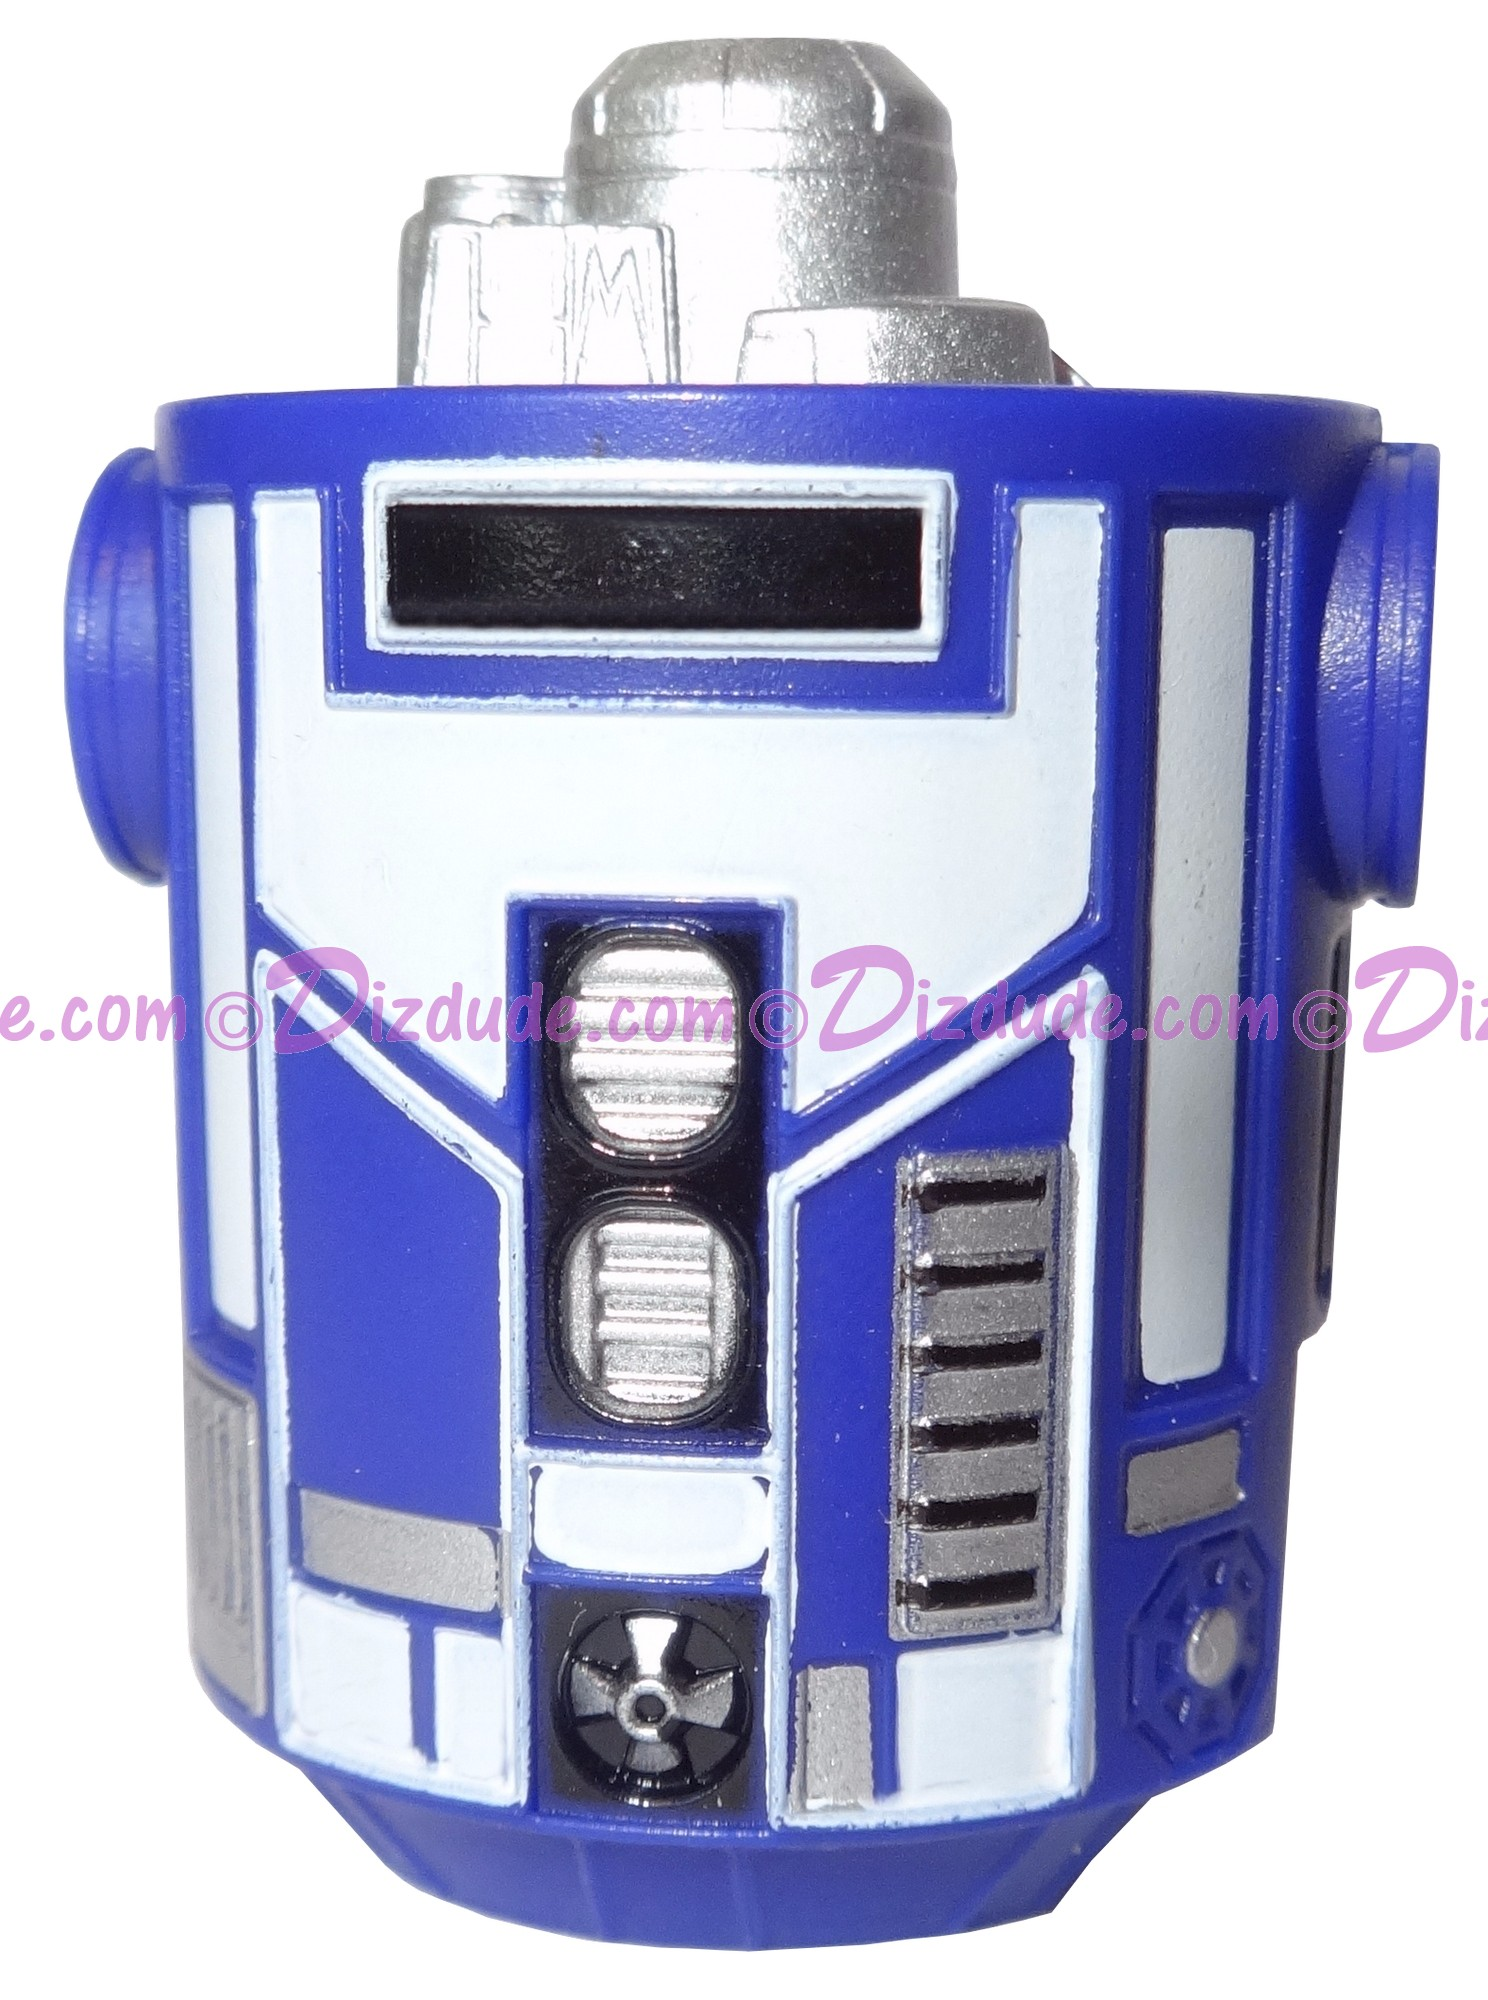 Blue Astromech Droid Body ~ Series 2 from Disney Star Wars Build-A-Droid Factory © Dizdude.com